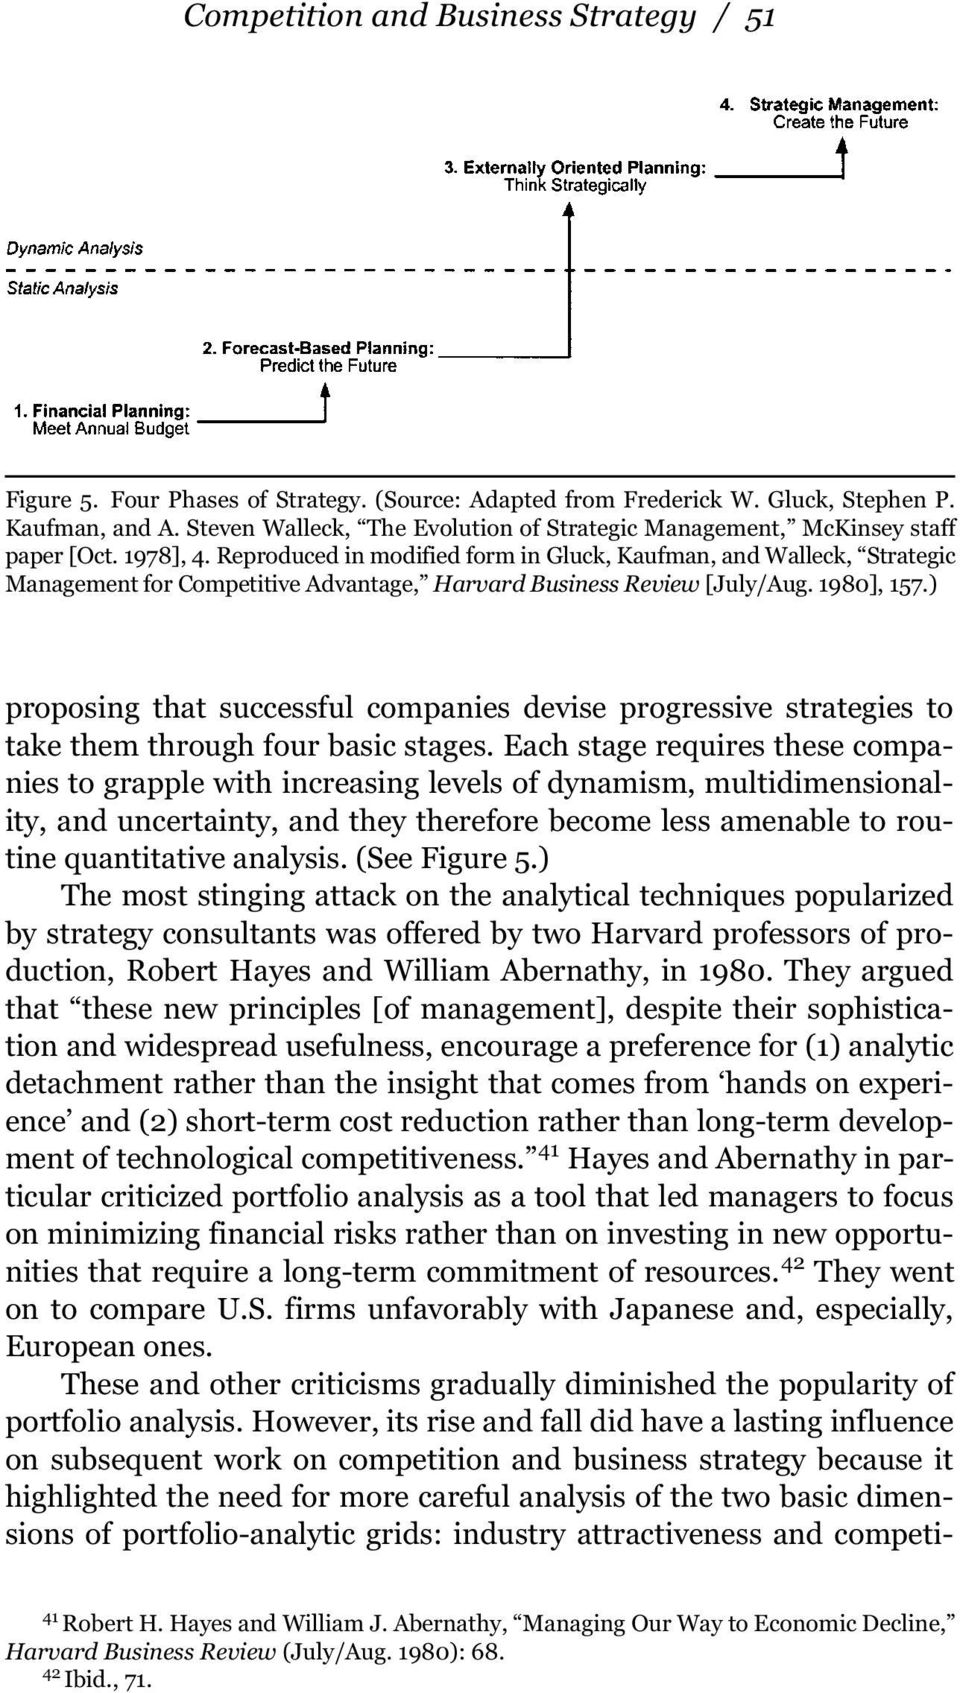 Reproduced in modified form in Gluck, Kaufman, and Walleck, Strategic Management for Competitive Advantage, Harvard Business Review [July/Aug. 1980], 157.